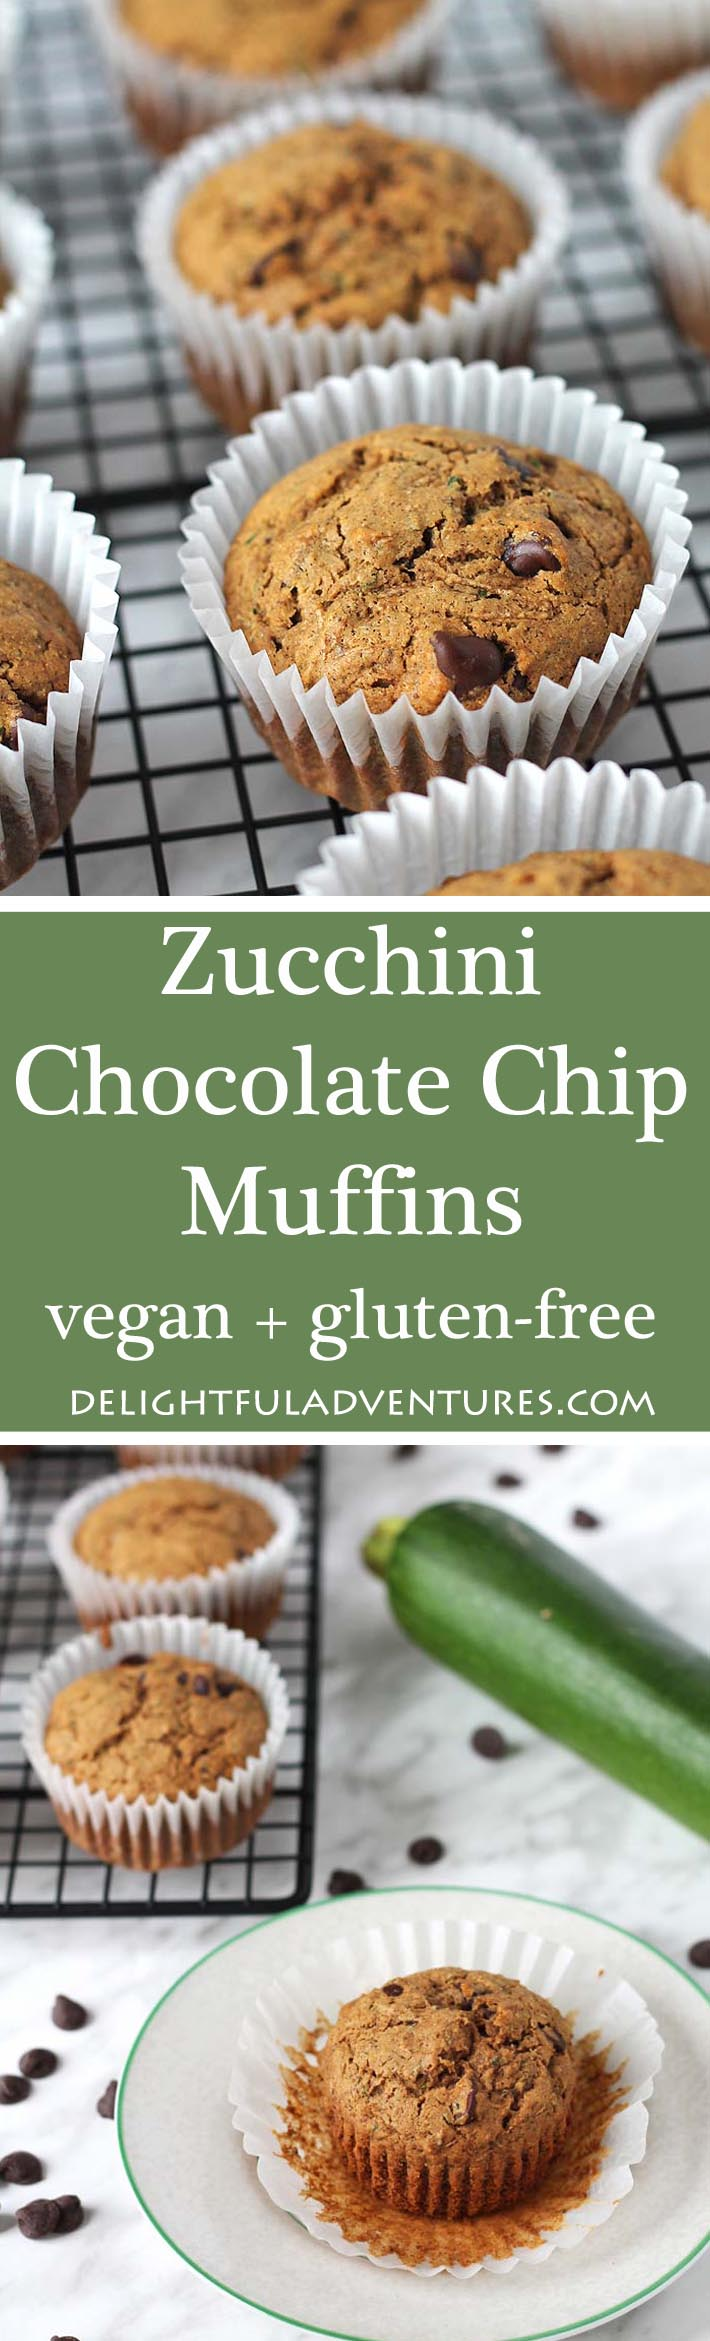 These delicious and easy-to-make vegan gluten free zucchini chocolate chip muffins are perfect for school snacks or for snacking on at home!